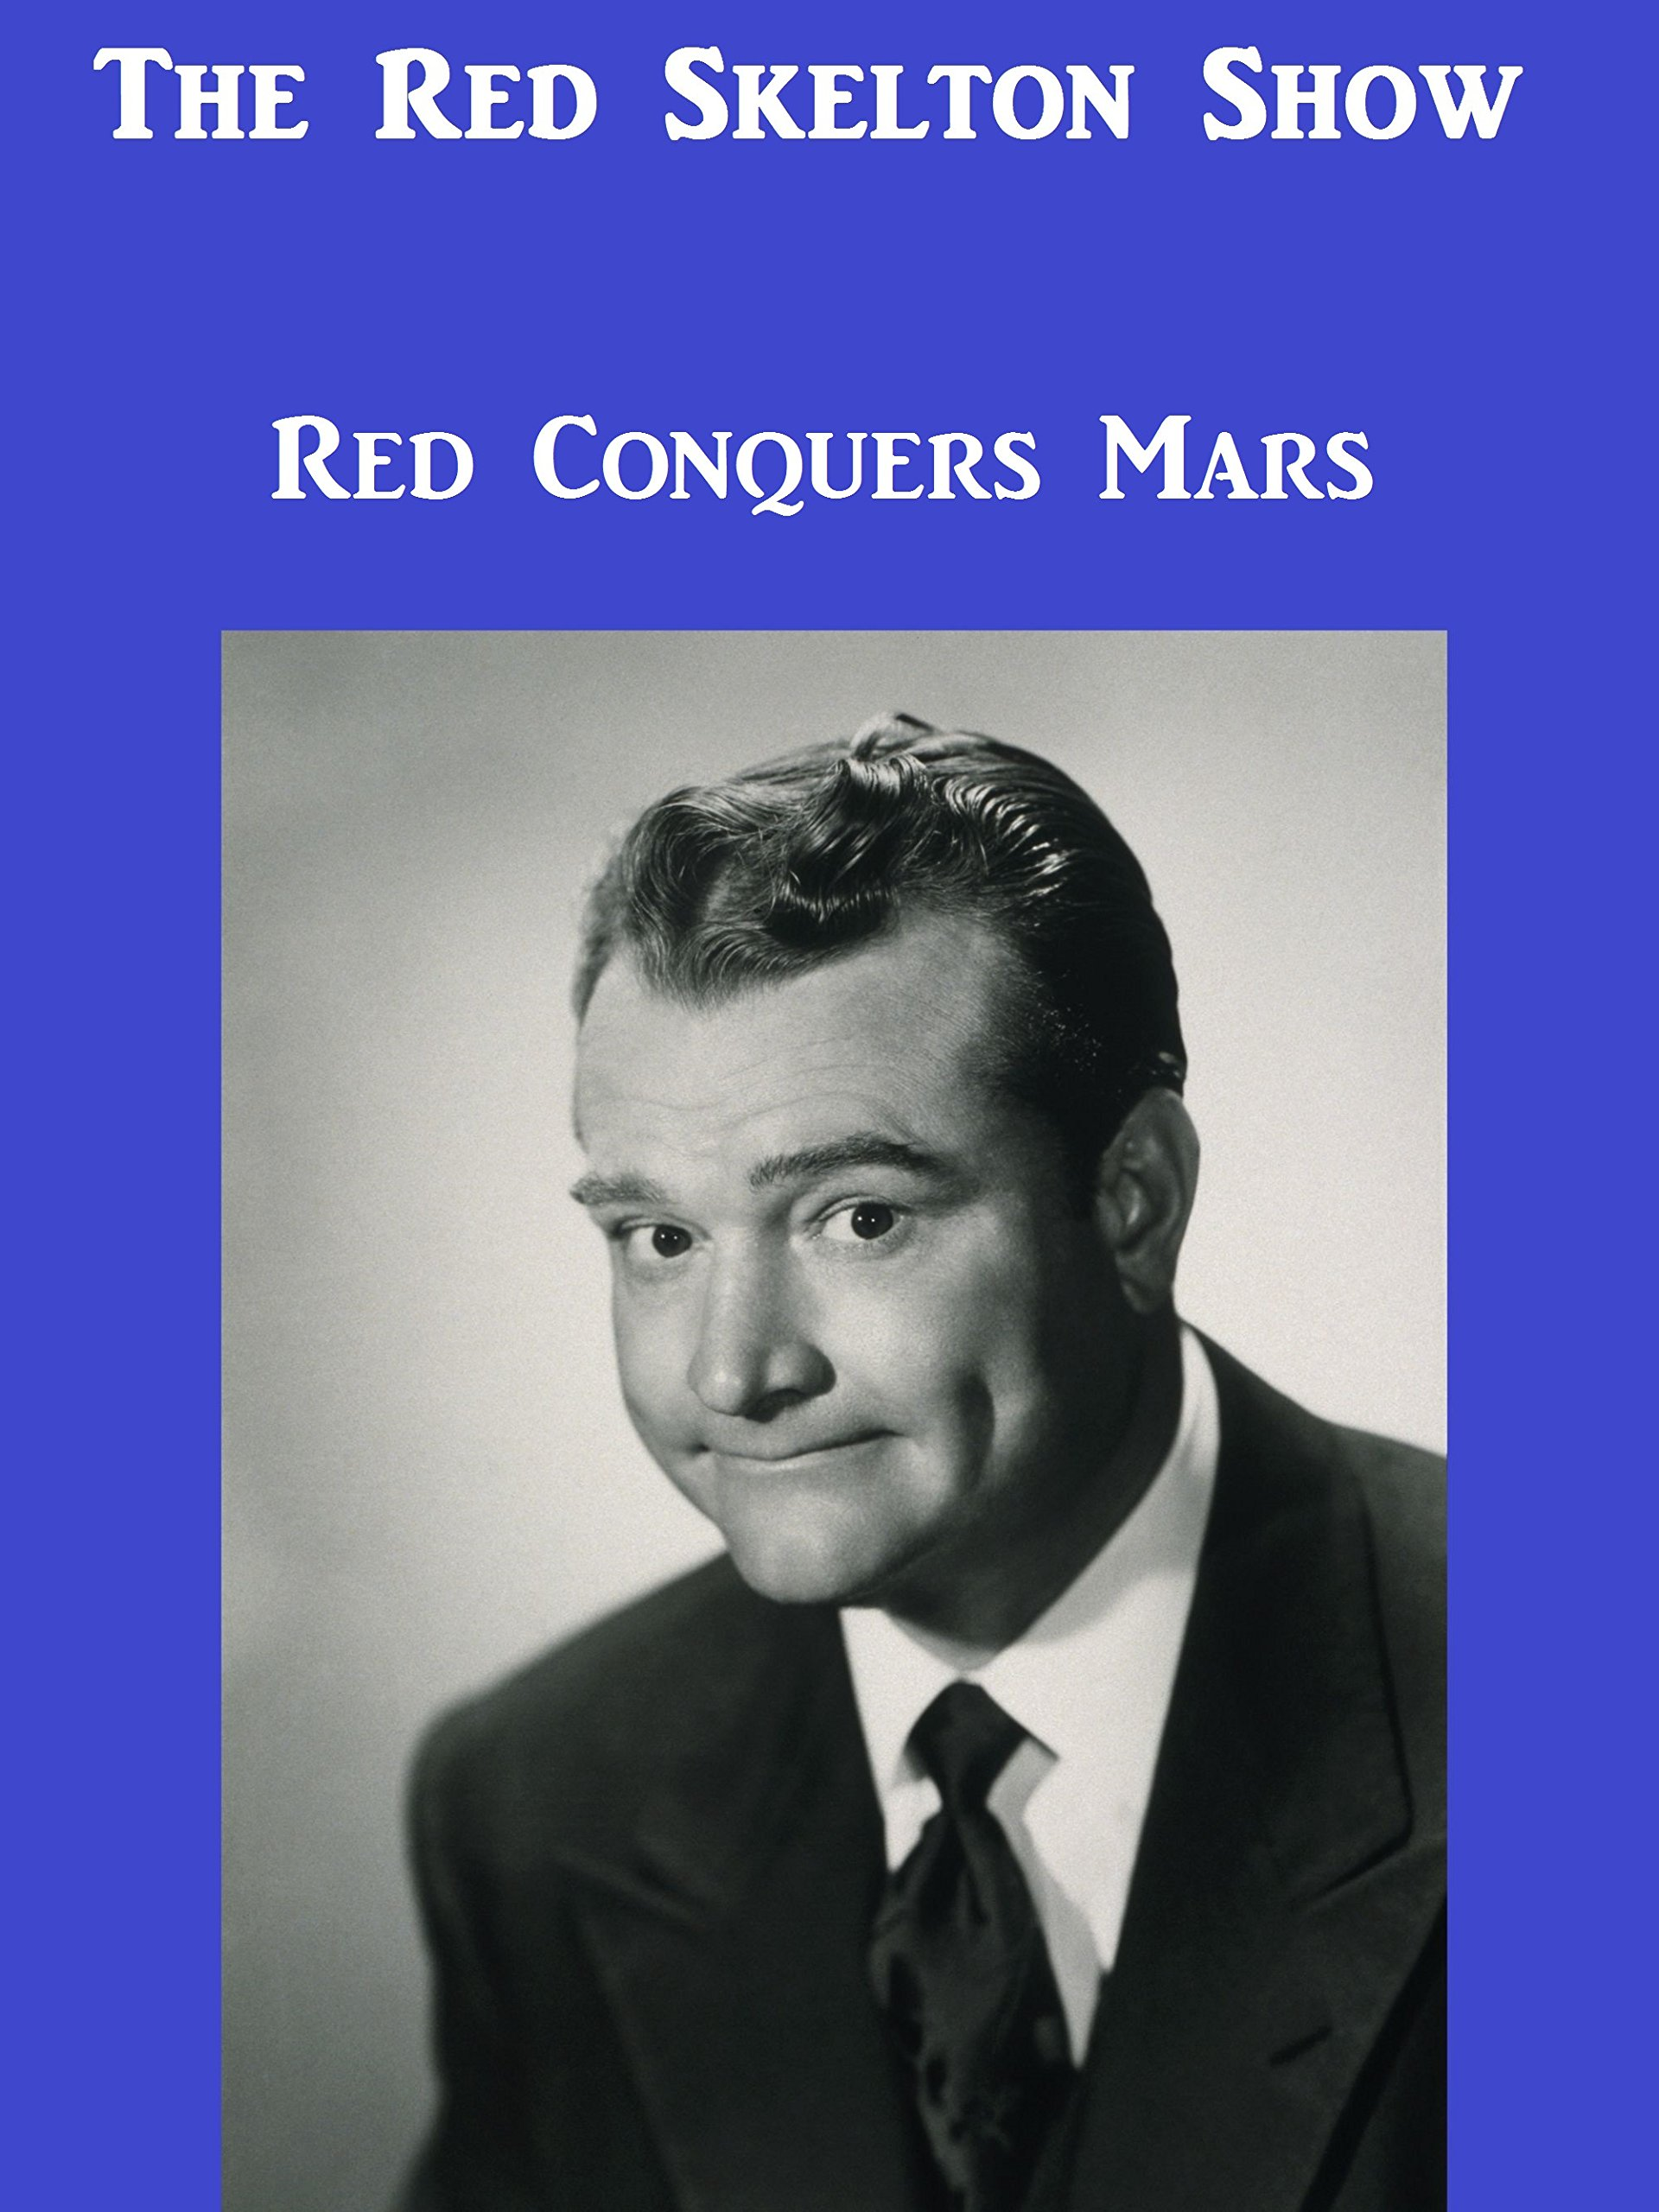 The Red Skelton Show (Red Conquers Mars)